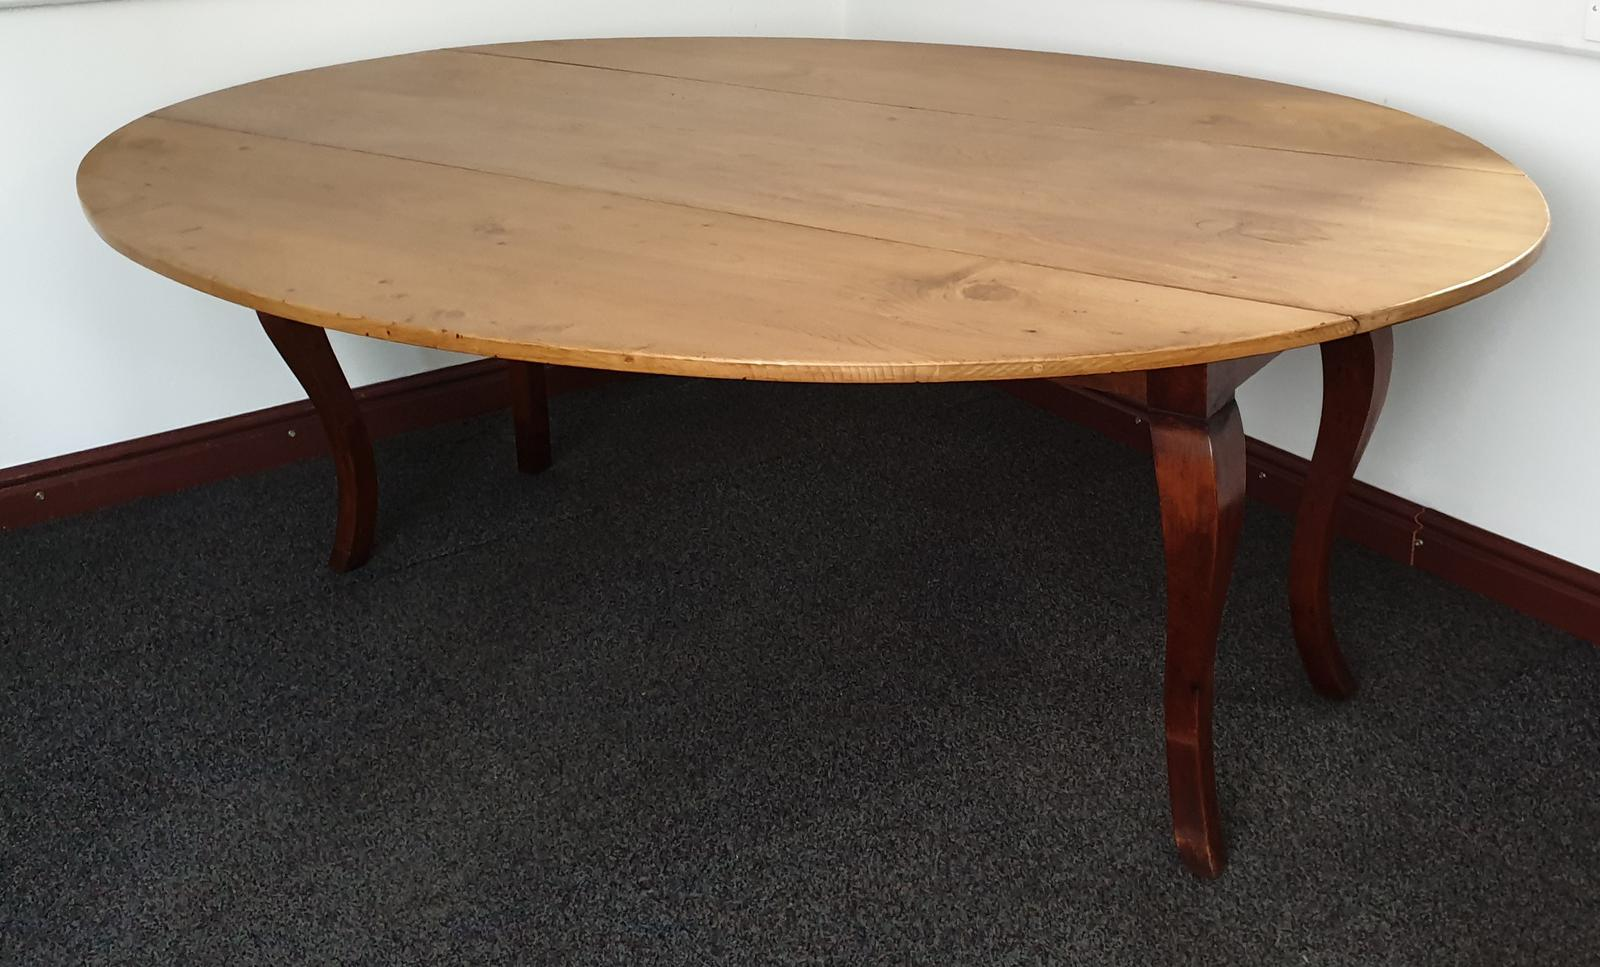 Large French Fruitwood & Pine Farmhouse Kitchen Table (1 of 1)